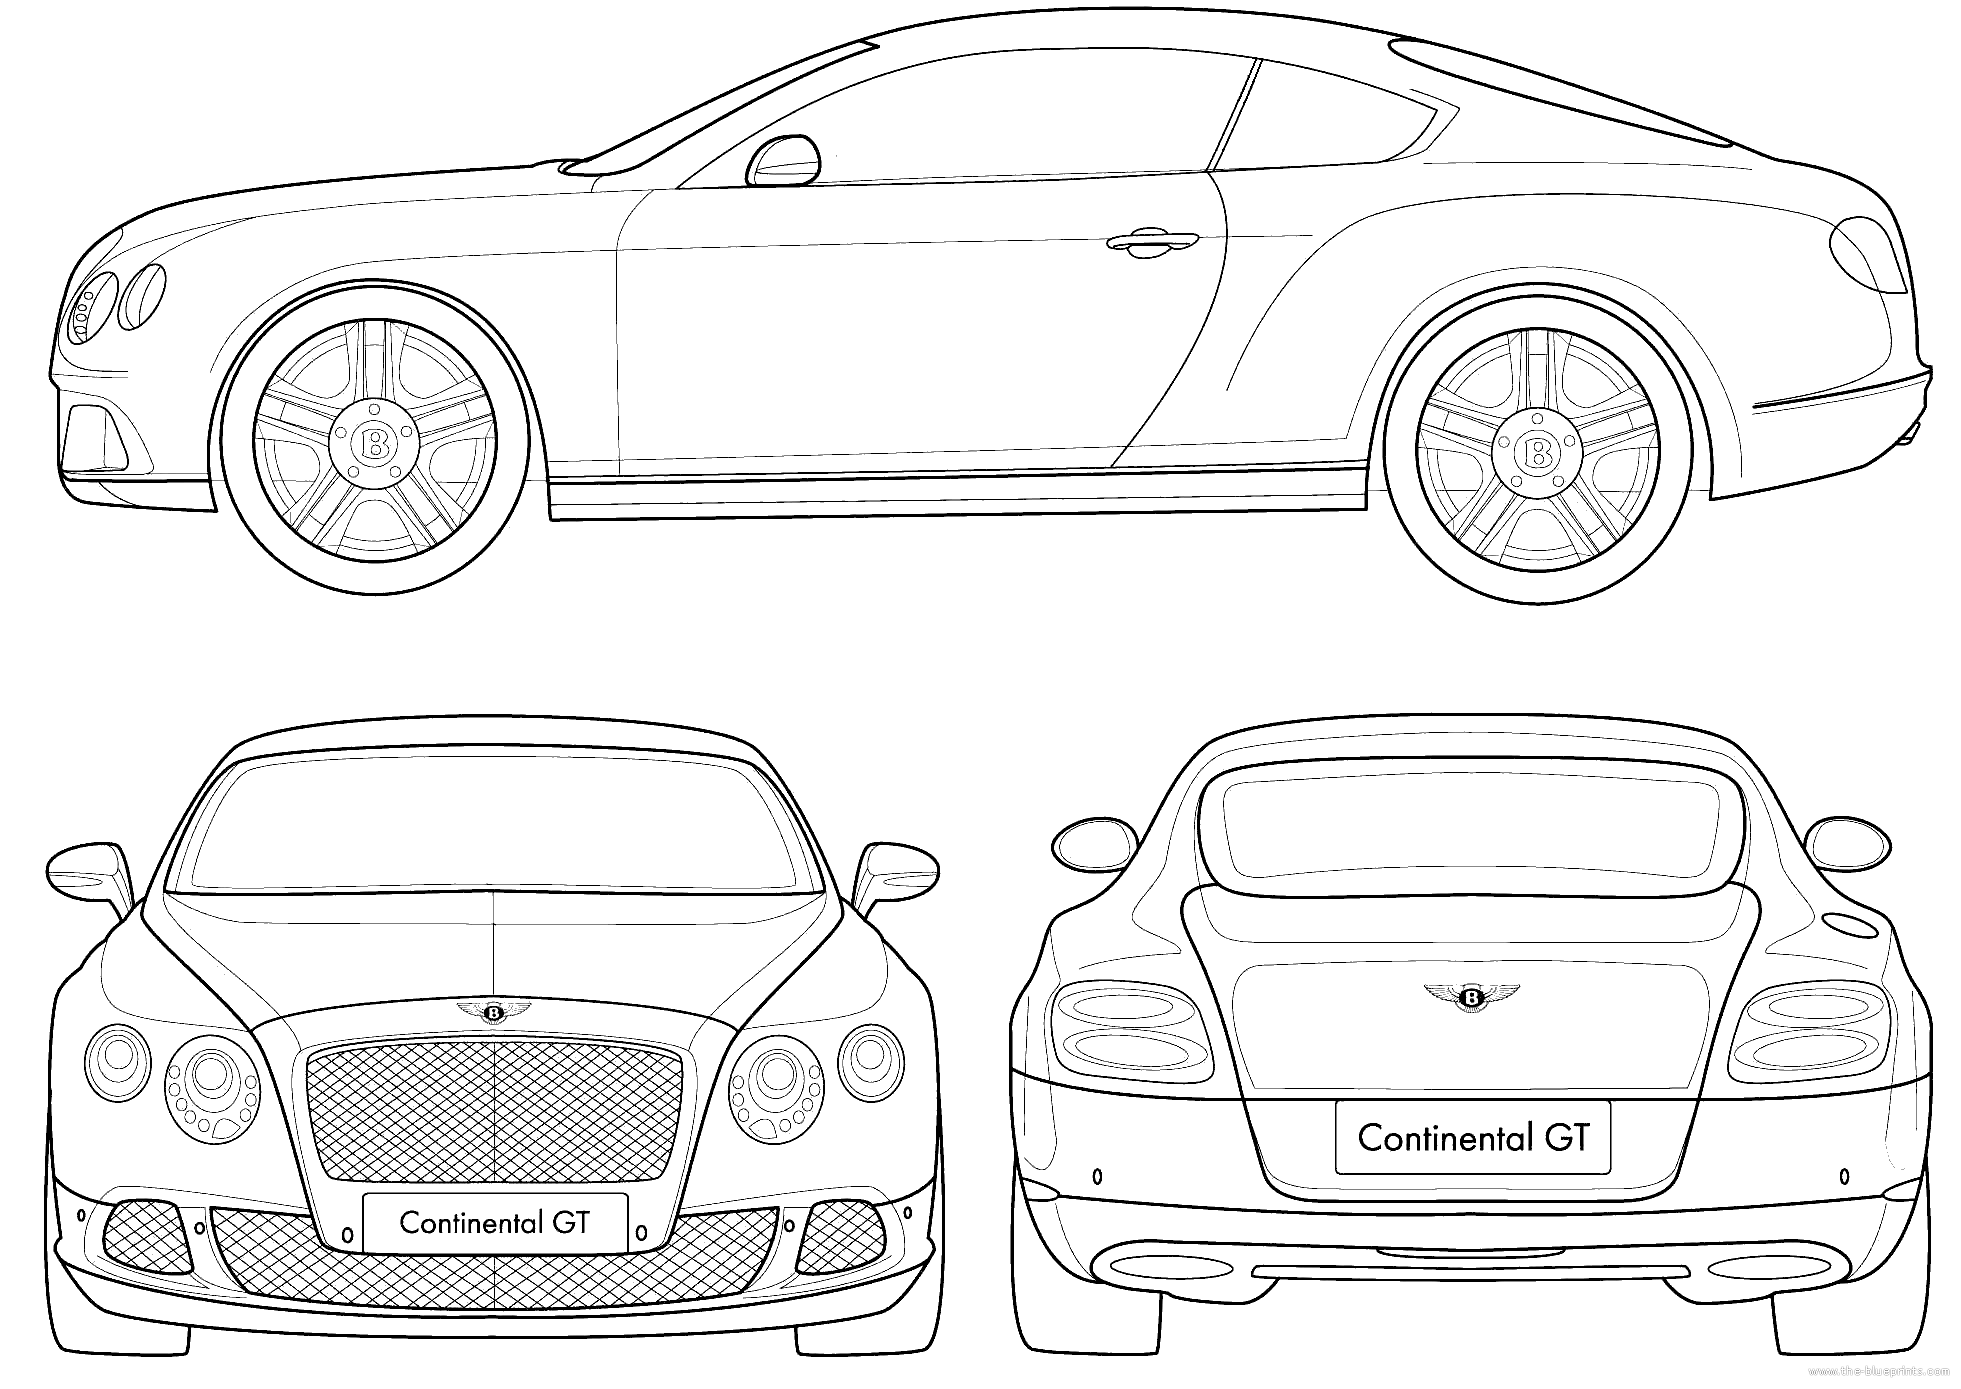 Bentley continental gt coupe 2011 blueprint database pinterest bentley continental gt coupe 2011 malvernweather Choice Image